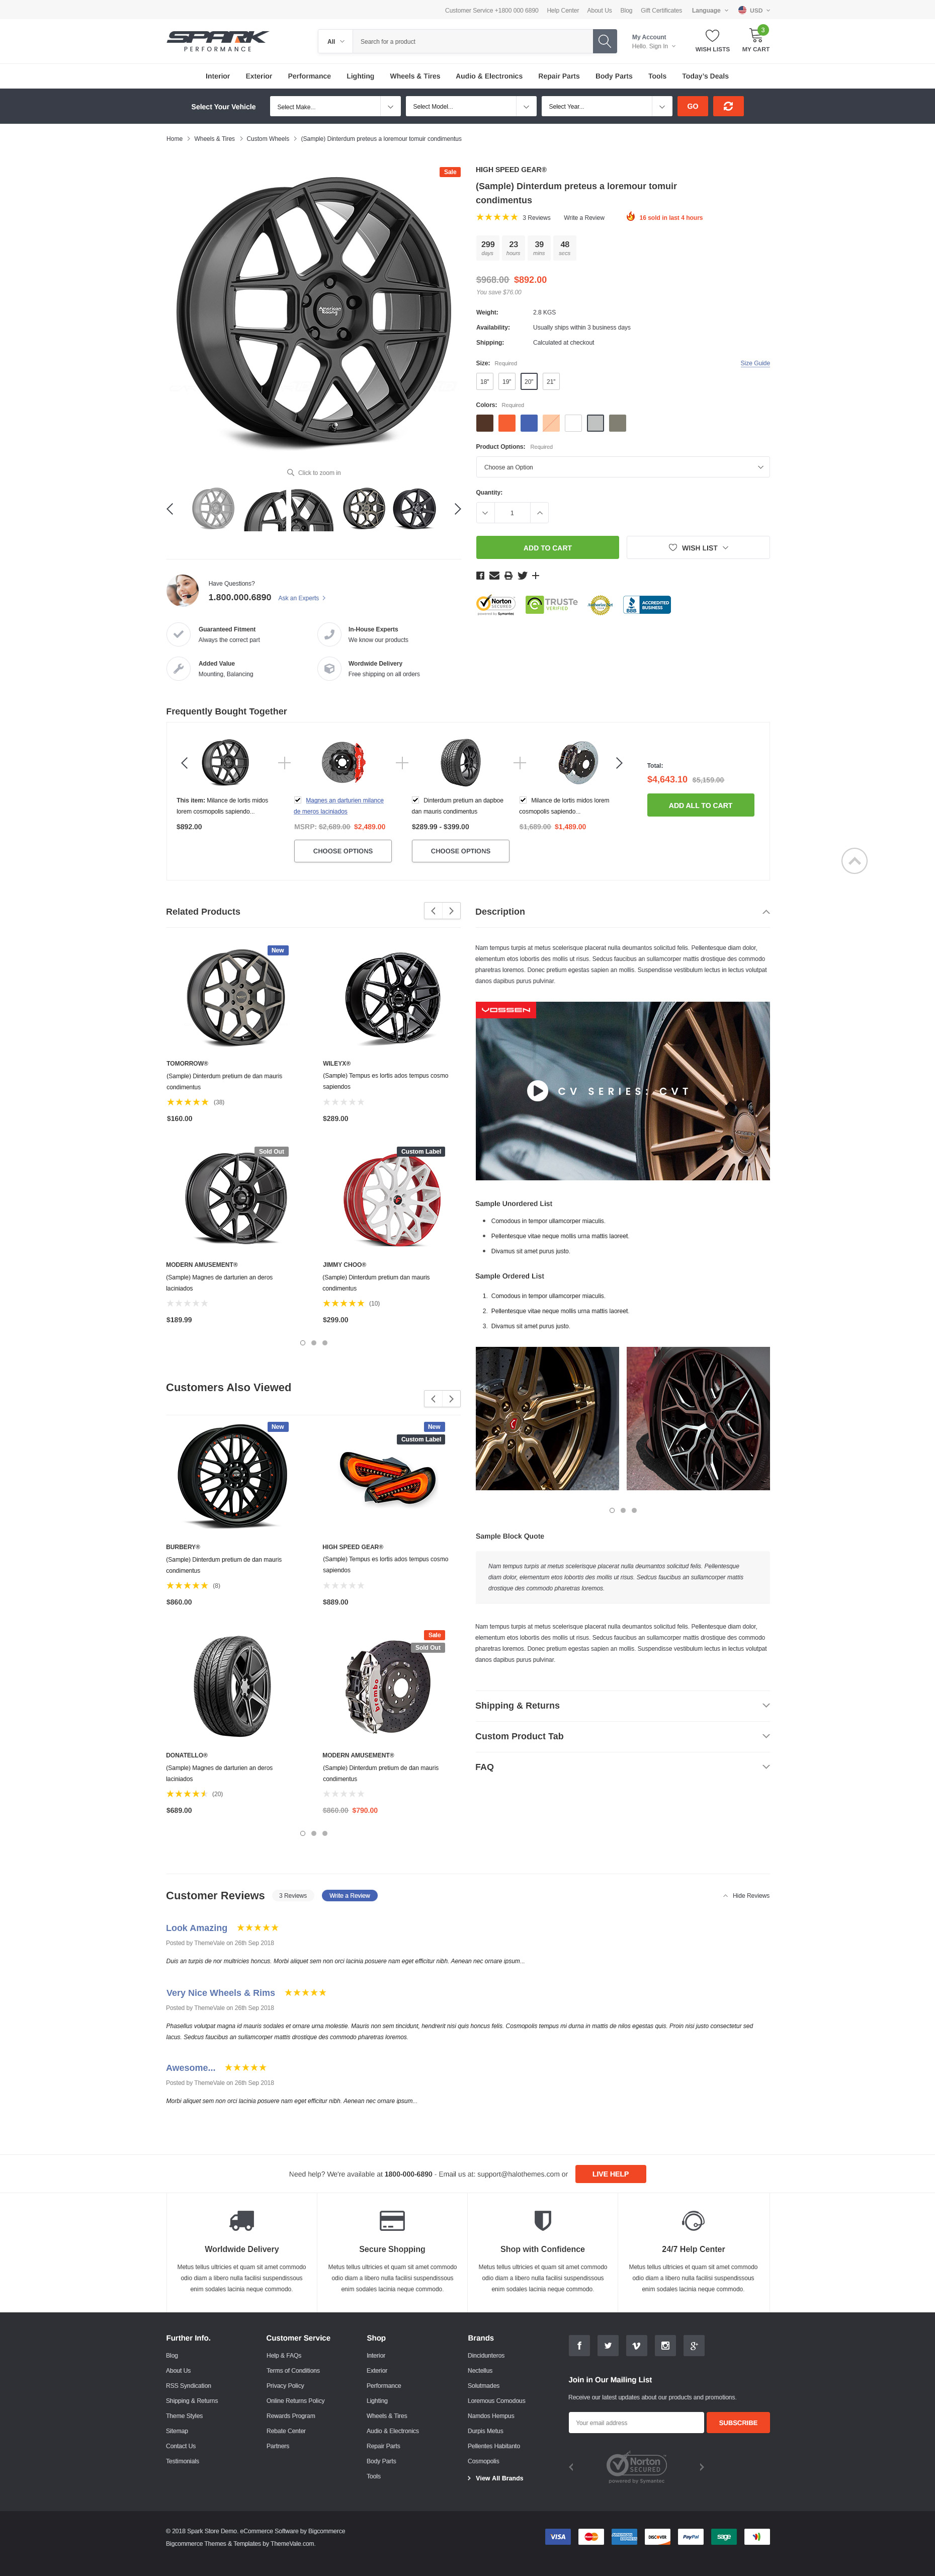 SPARK - Cars & Auto Parts Automotive BigCommerce Theme (Stencil Ready): Initial Release